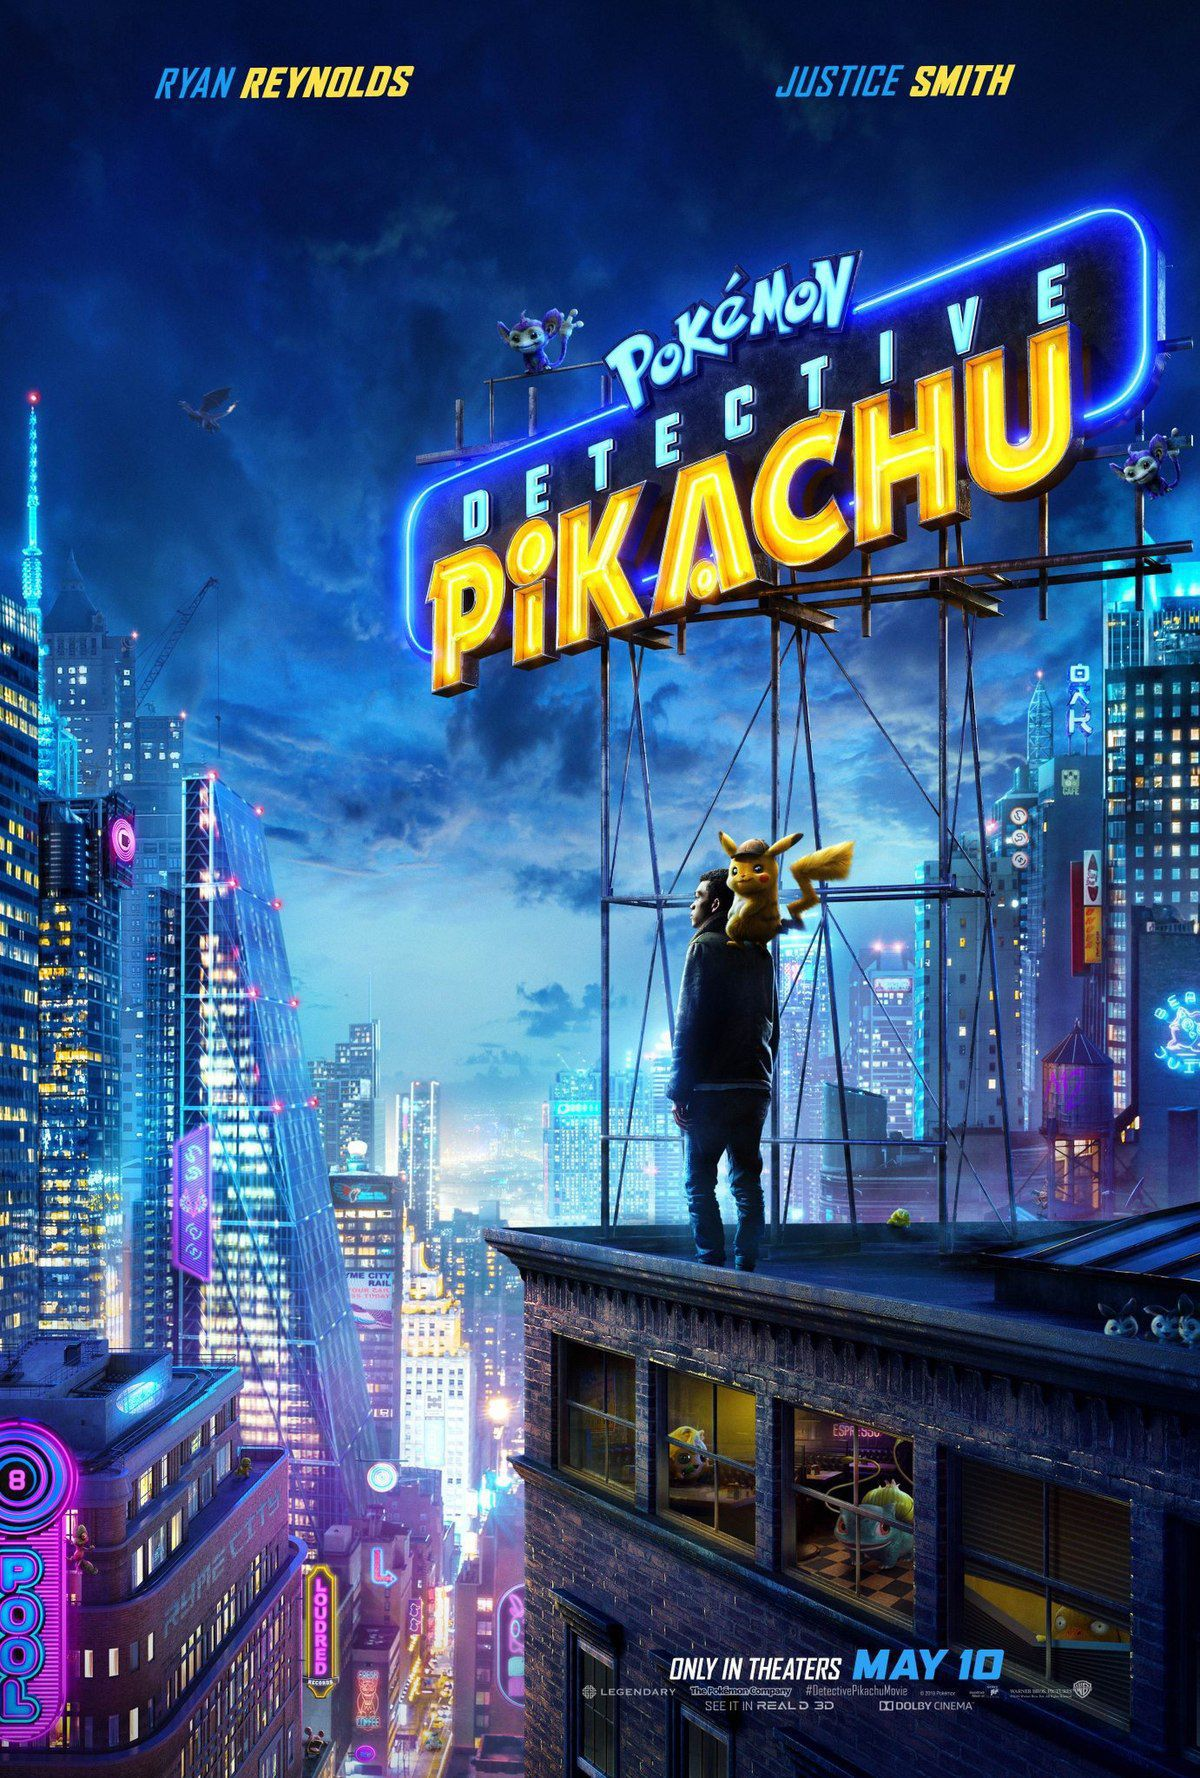 Pokemon Detective Pikachu 2019 live action movie - poster city landscape